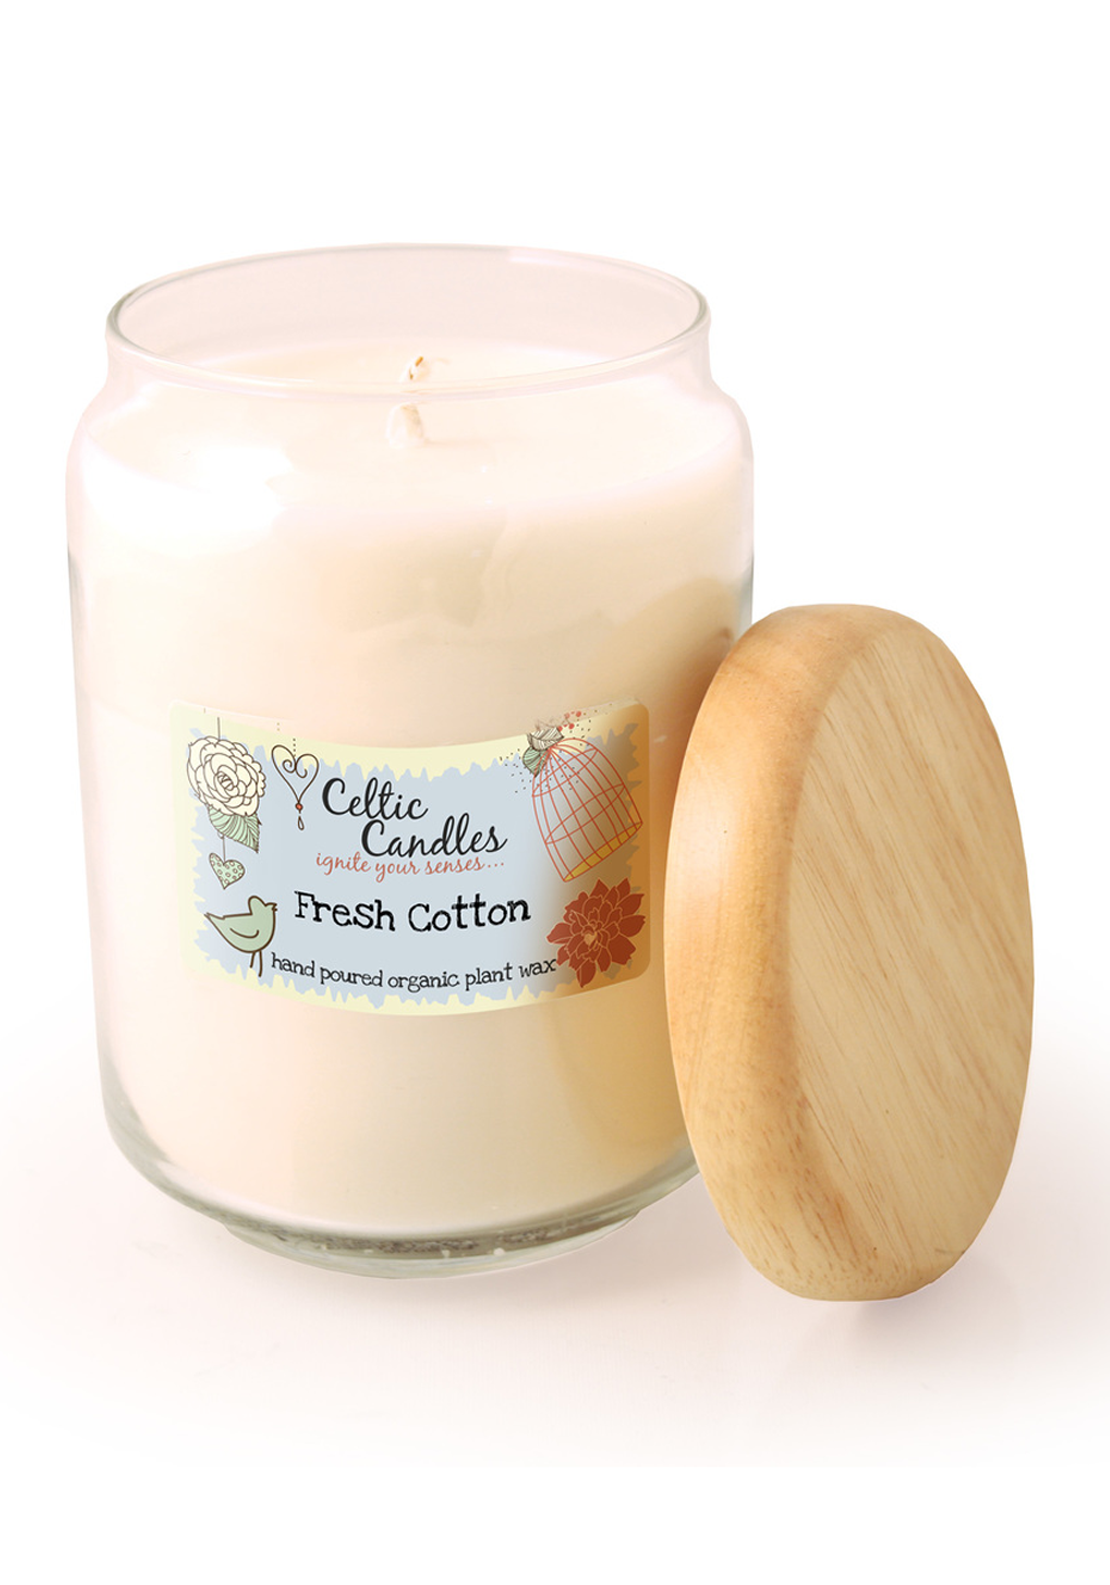 Celtic Candles Large Fresh Cotton Candle Jar, 650ml